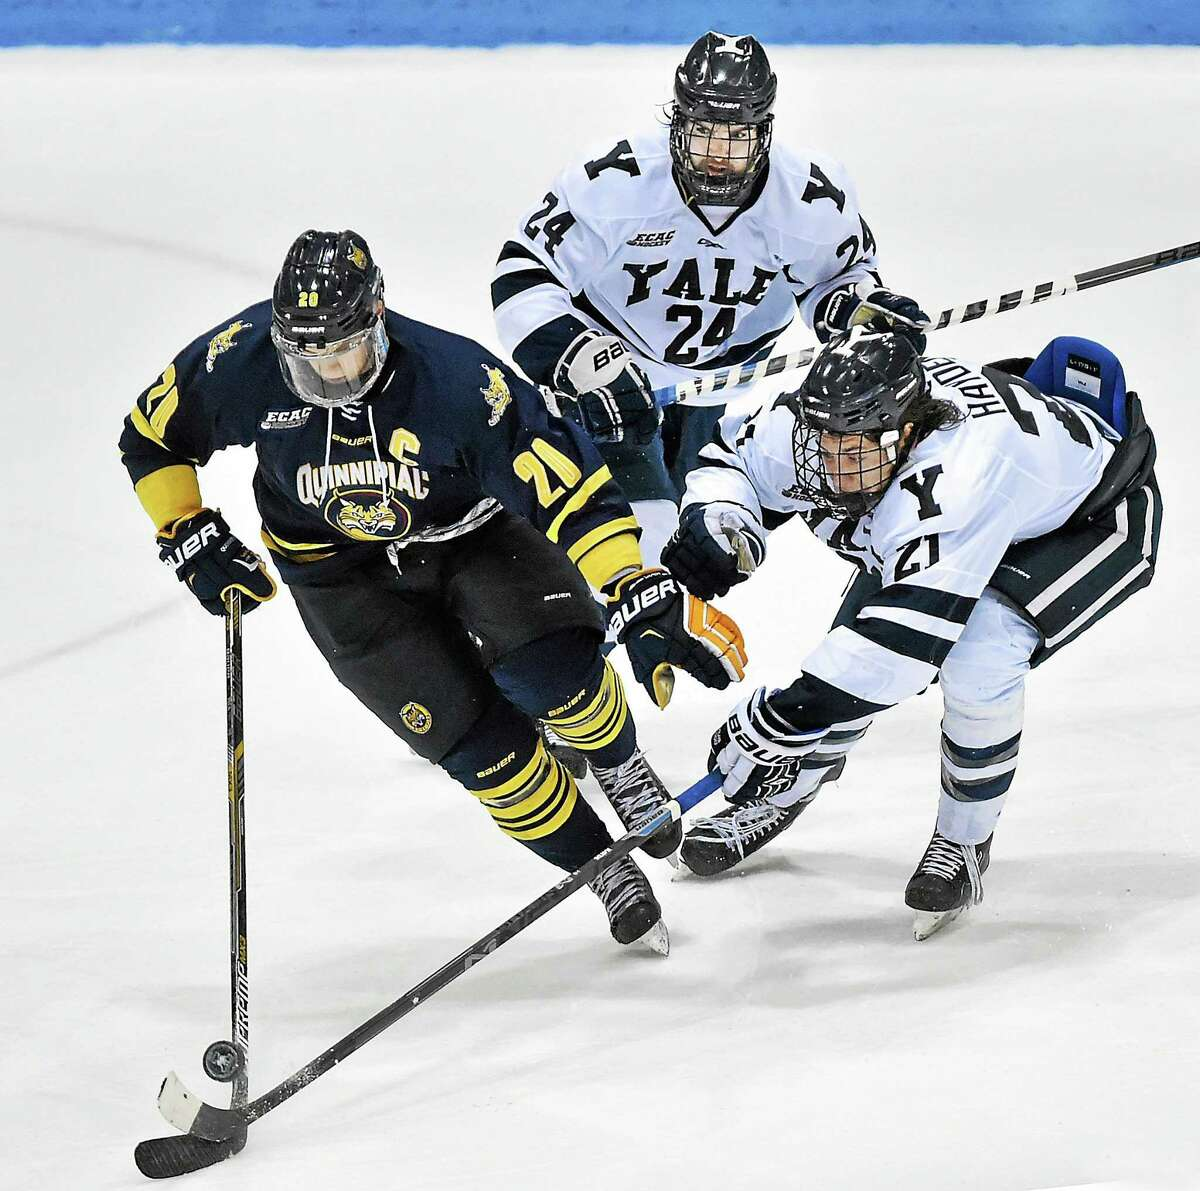 Quinnipiac's Matthew Peca (20) and Yale's John Hayden (21) and Mike Doherty (24) battle for posession. The Yale Bulldogs and the Quinnipiac Bobcats tied 2-2 in regulation play at Ingalis Rink at Yale University in New Haven, Saturday, January 31, 2015. After one 5-minute OT, the score remained, 2-2. (Catherine Avalone/New Haven Register)